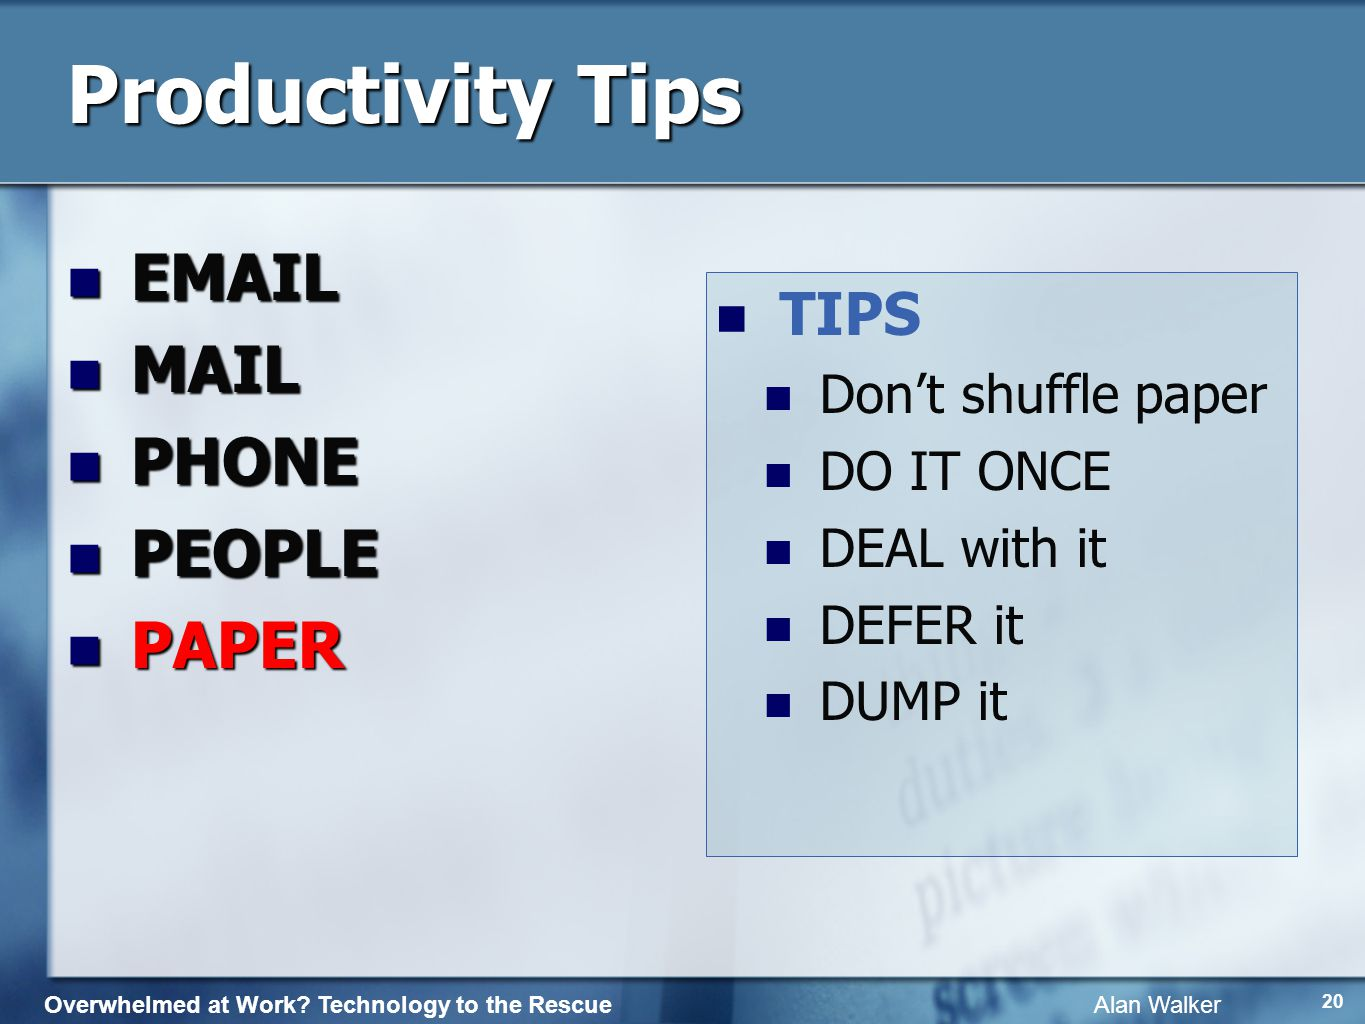 Overwhelmed at Work? Technology to the Rescue Alan Walker 19 Productivity Tips EMAIL EMAIL MAIL MAIL PHONE PHONE PEOPLE PEOPLE Terrific TIPs Terrific